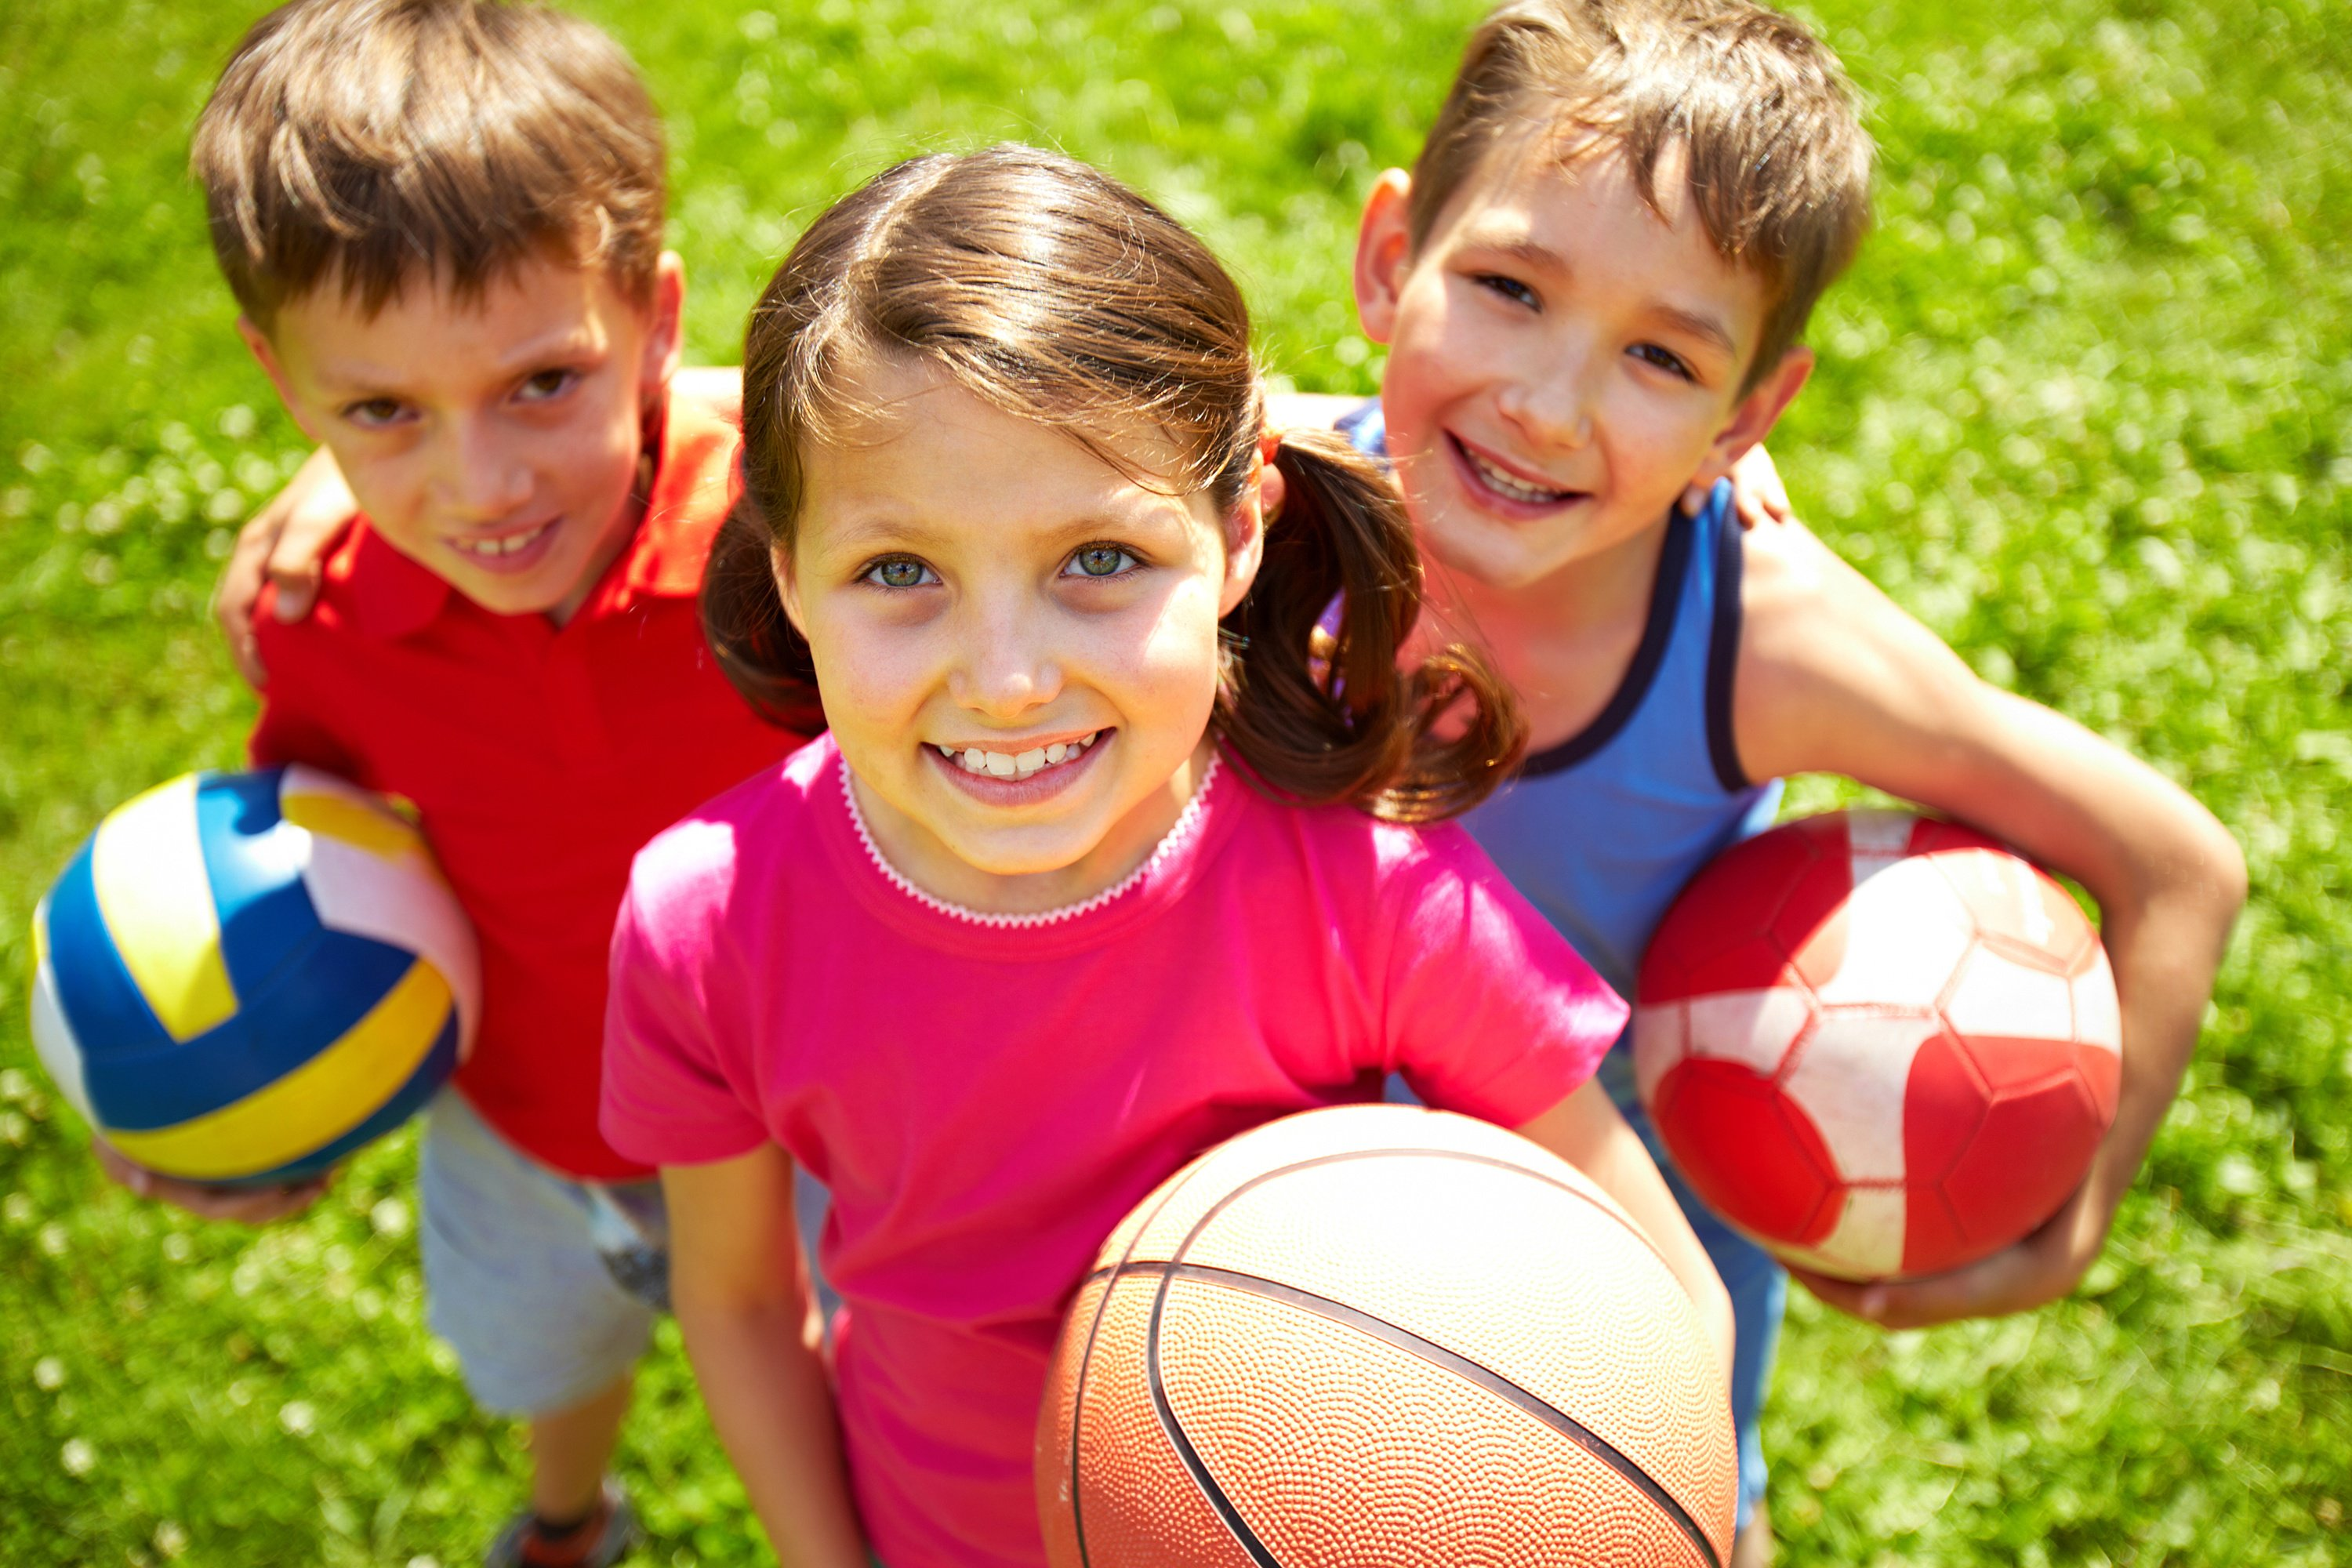 Sports Physicals and How to Prevent Sport Related Injuries